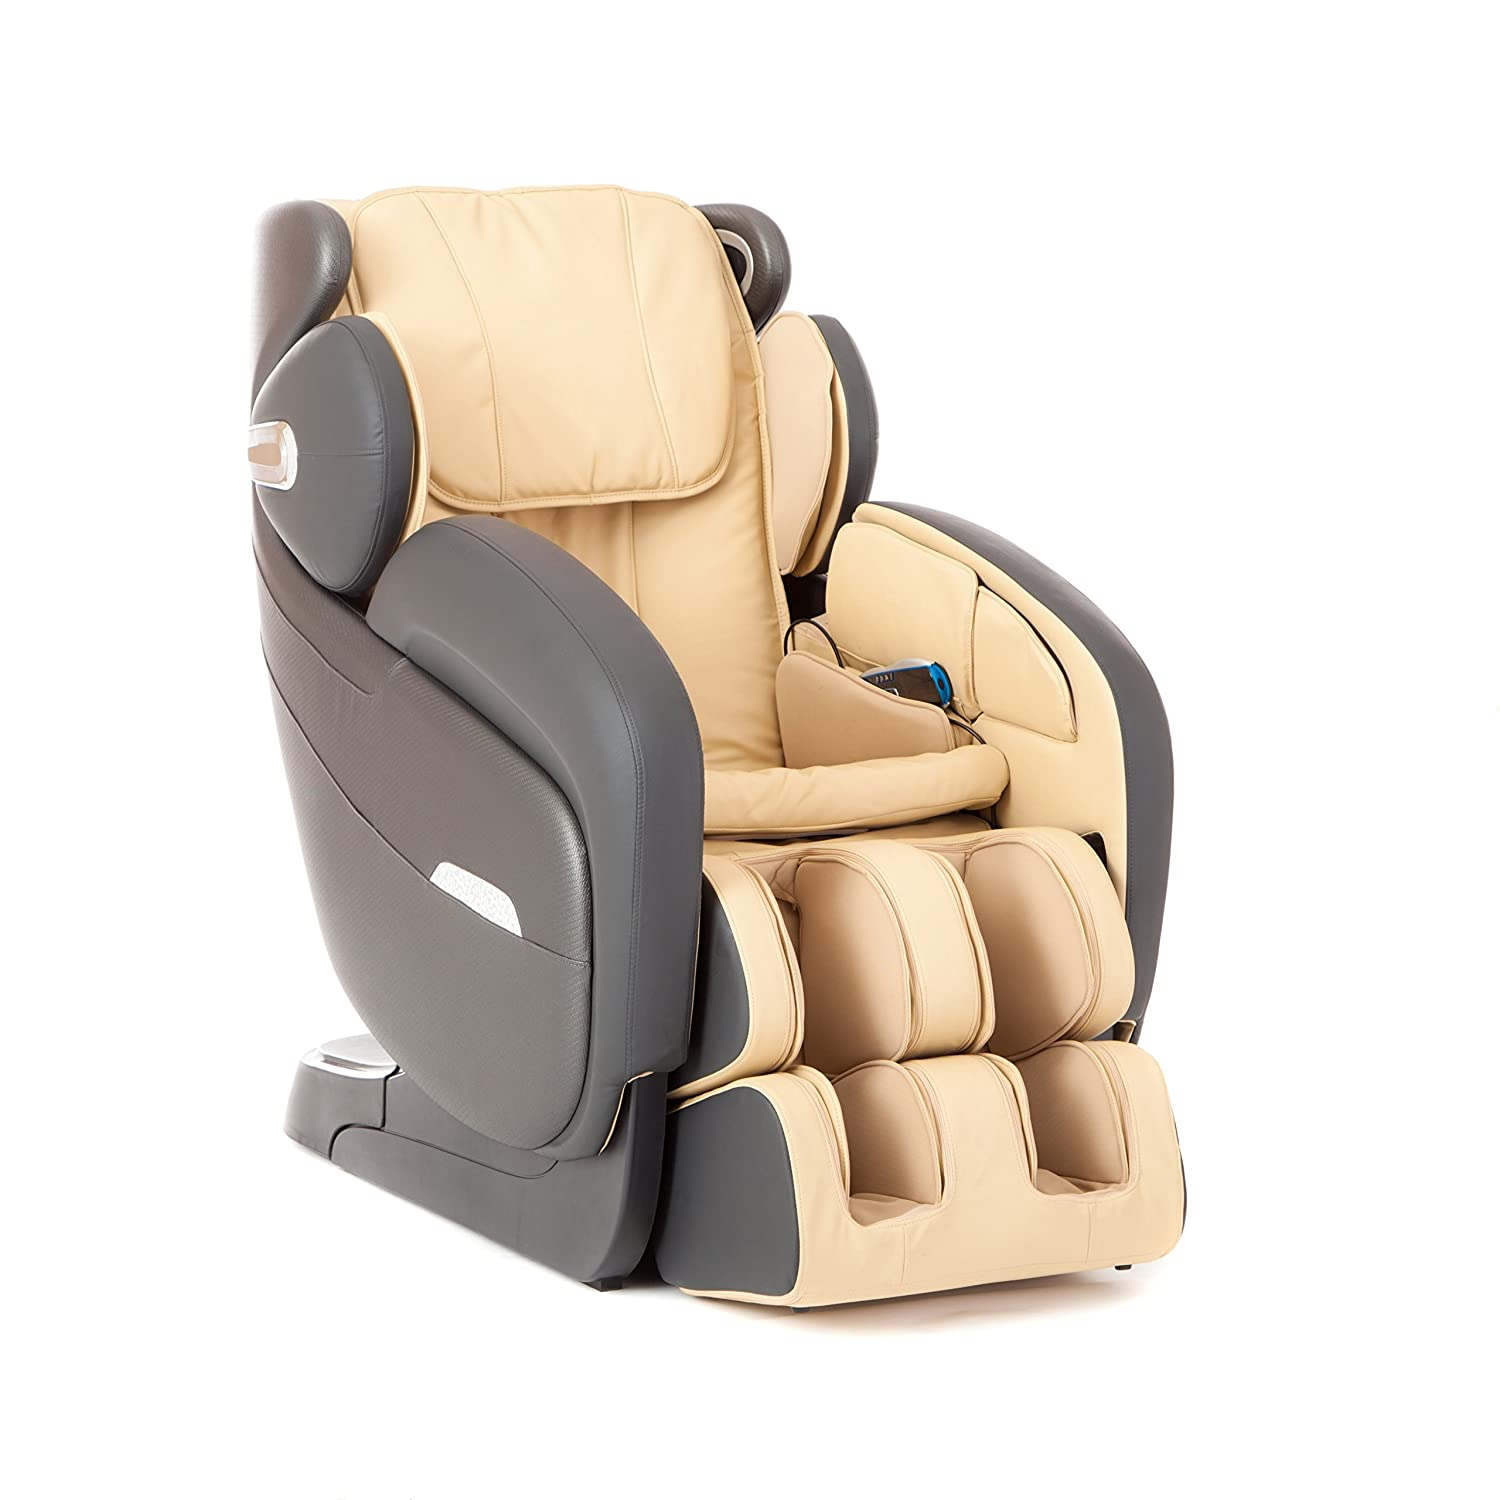 Massage Chair WEYRON Oyster Electric Massage Chair Recliner